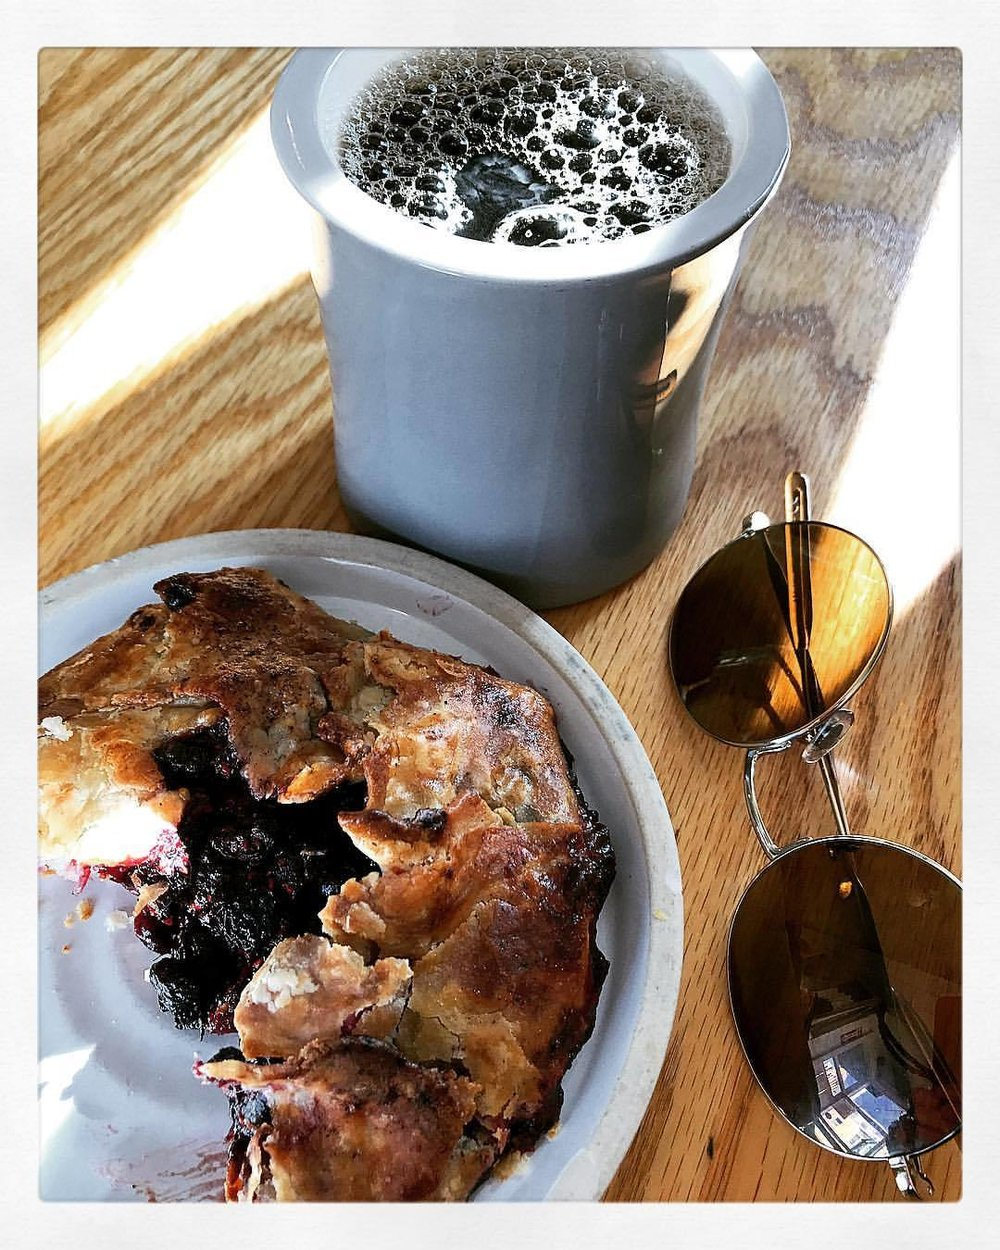 New England breakfast fare:  wild Wellfleet berry galette and dreamy black coffee from Portland, Maine.    -  #massachusetts #tandemcoffee #capecod #provincetown  (at The Canteen)